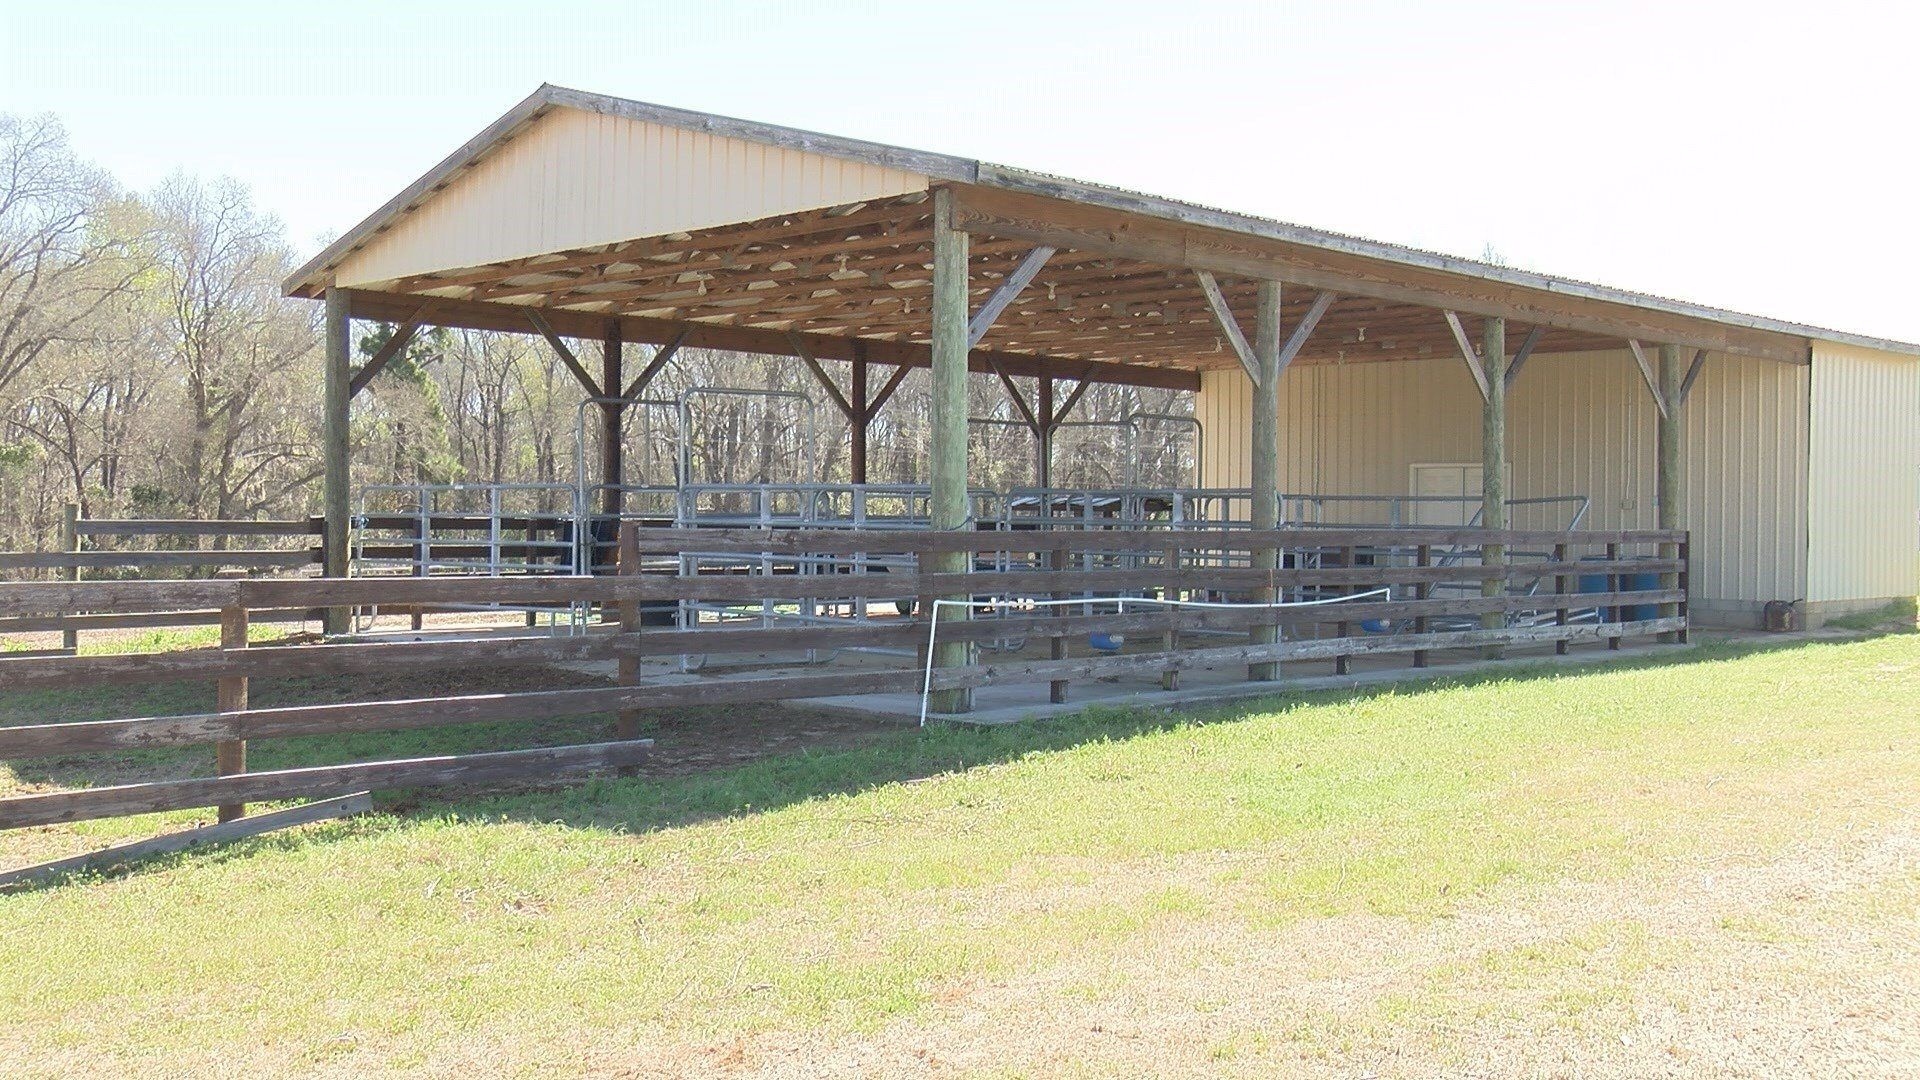 Burke County High School agriculture barn and outdoor classroom (WFXG)